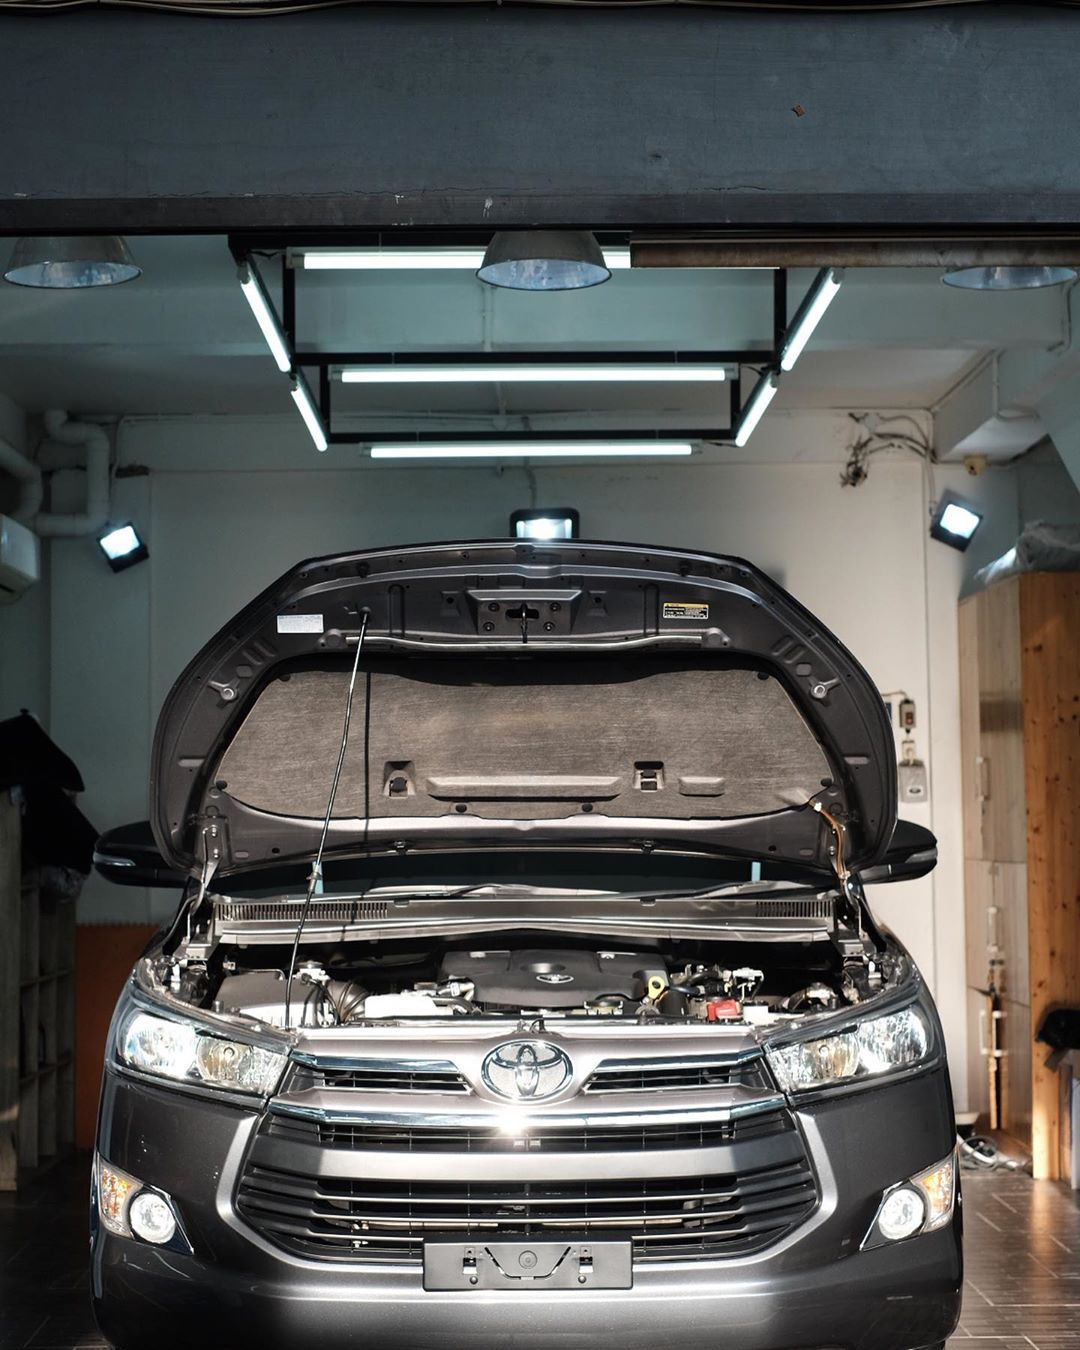 Toyota Innova after Premium Detailing and Coating